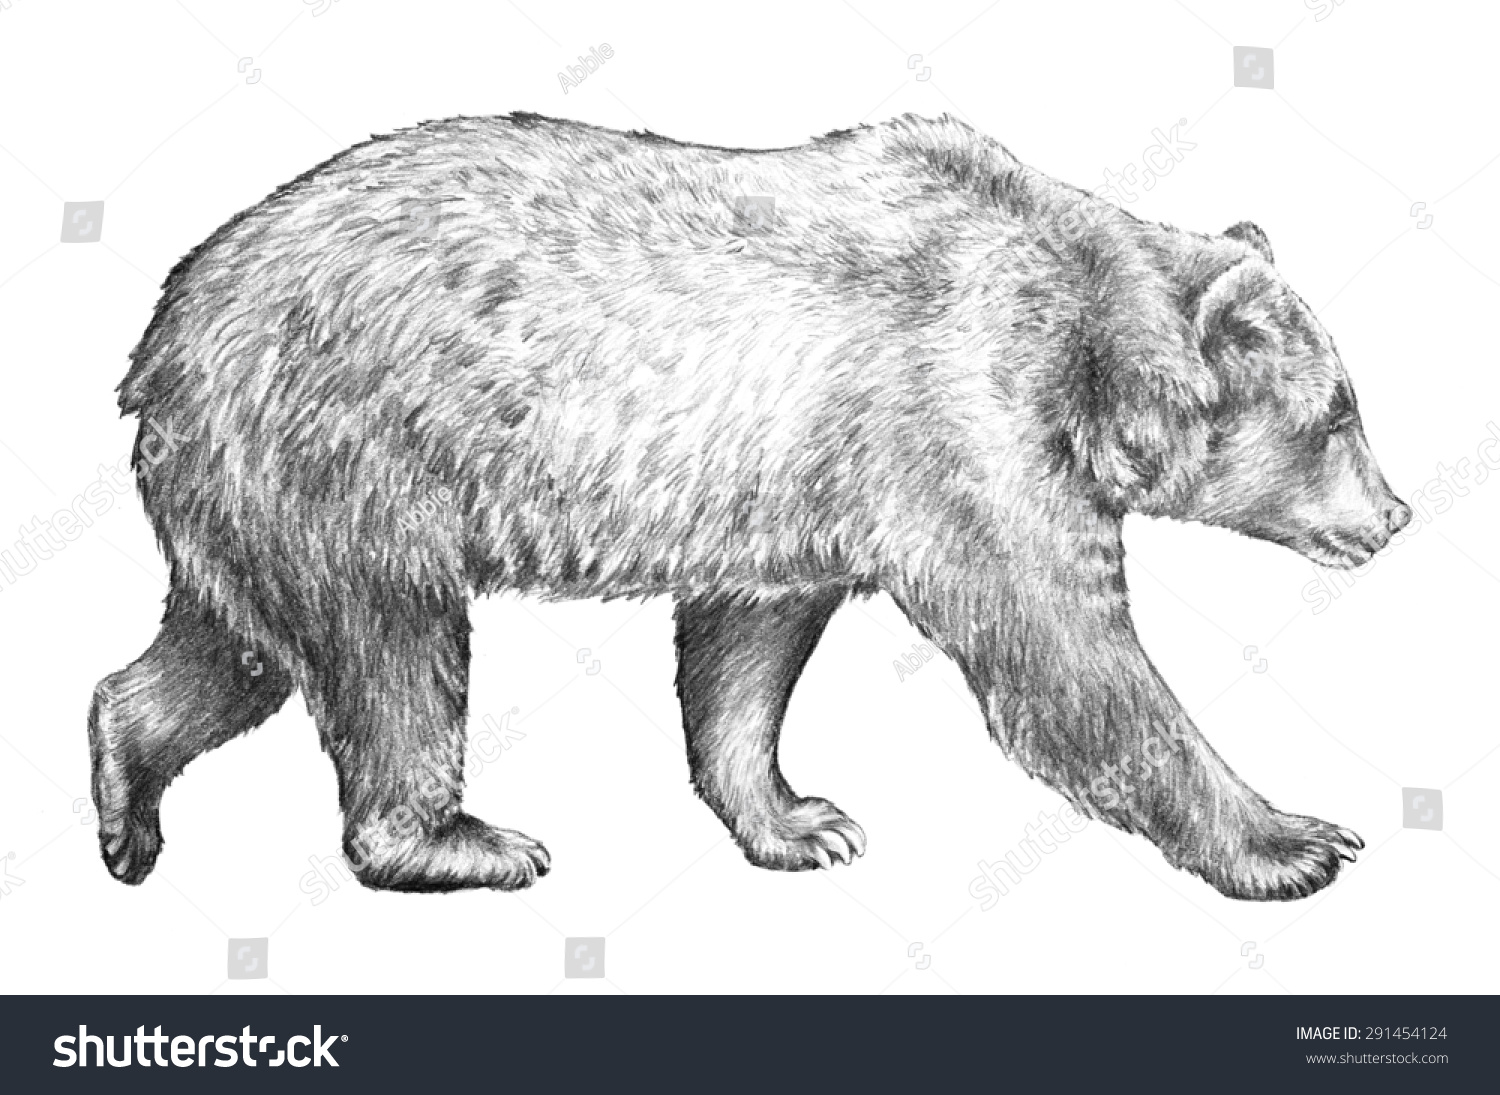 Grizzly bear walking - photo#40